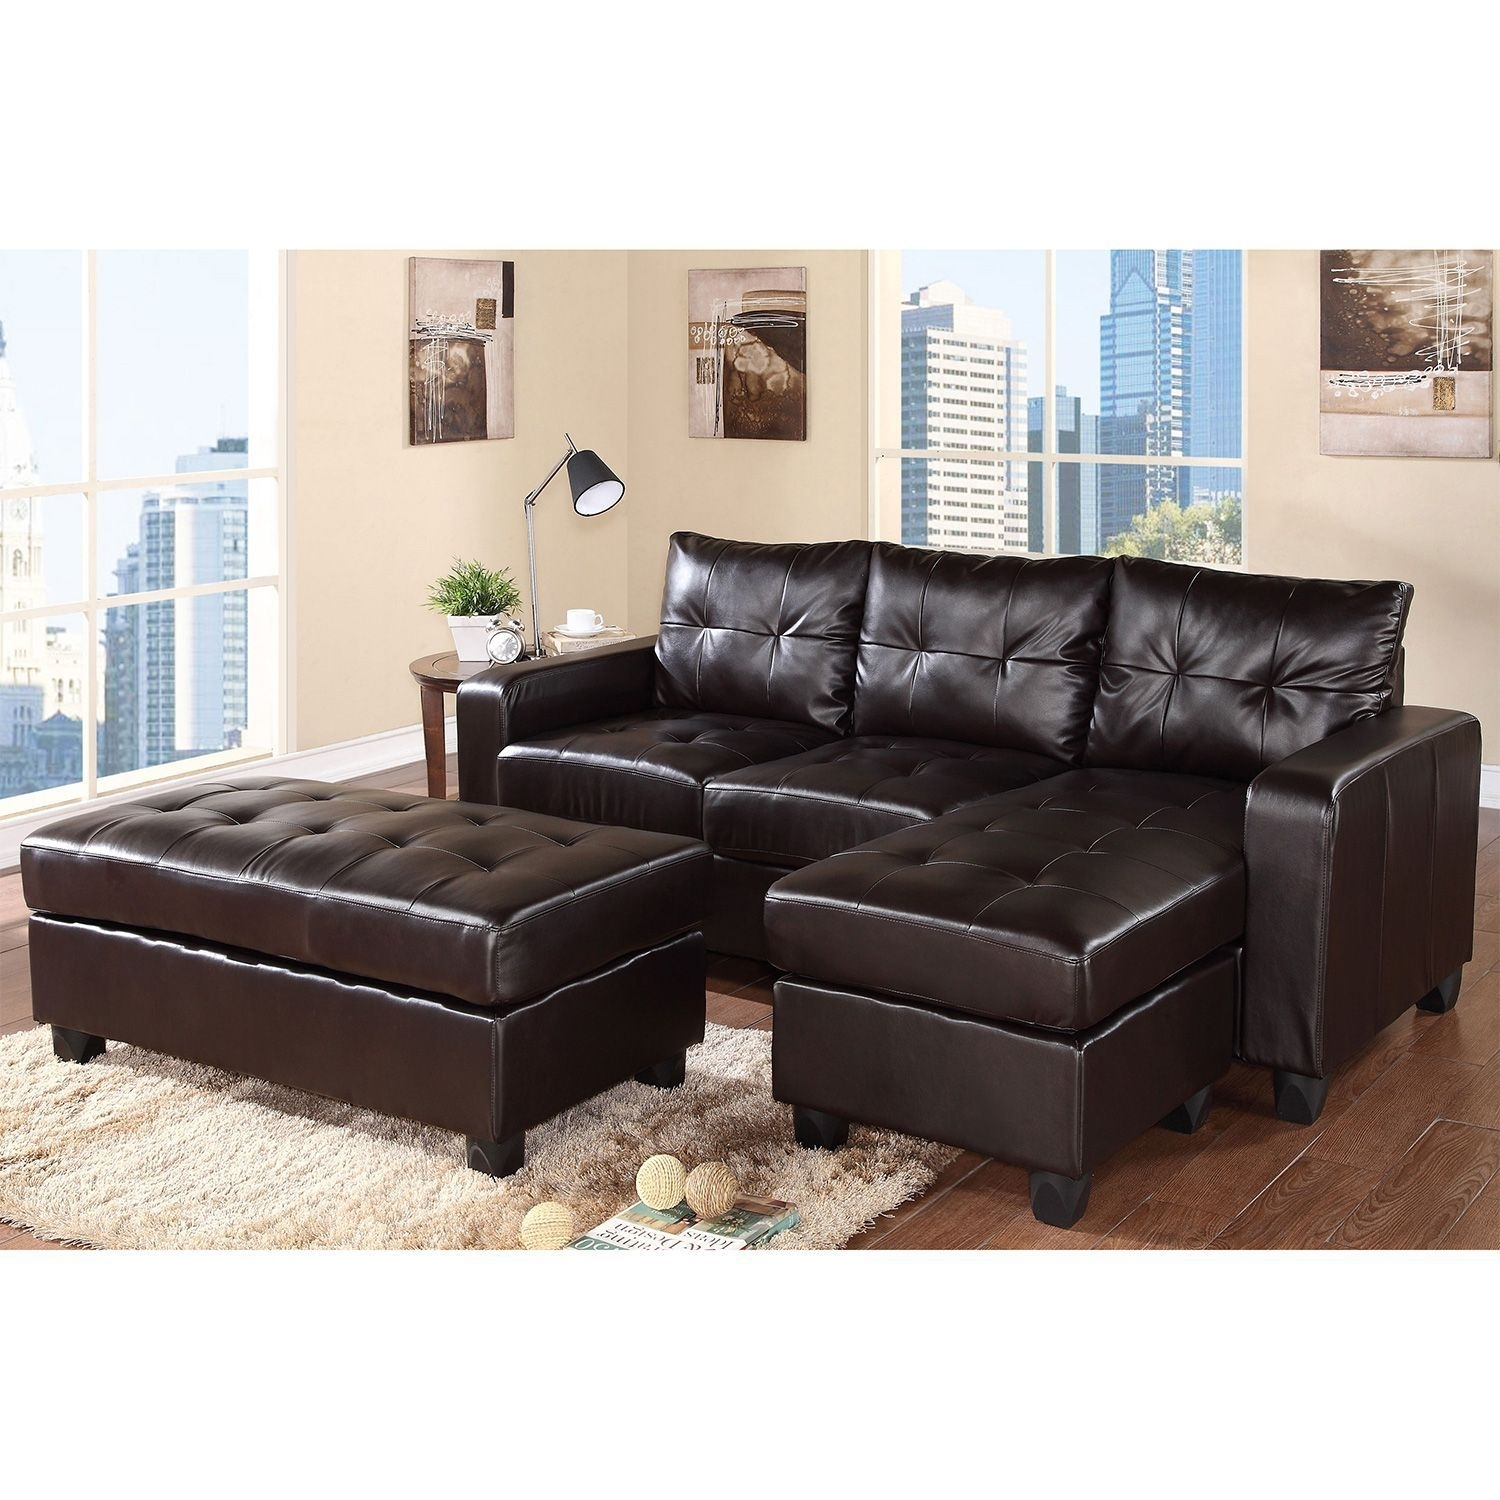 Aspen Sectional Leather Sofa With Ottoman – Sam's Club | Cabin With Sectional Sofas At Sam's Club (View 9 of 10)